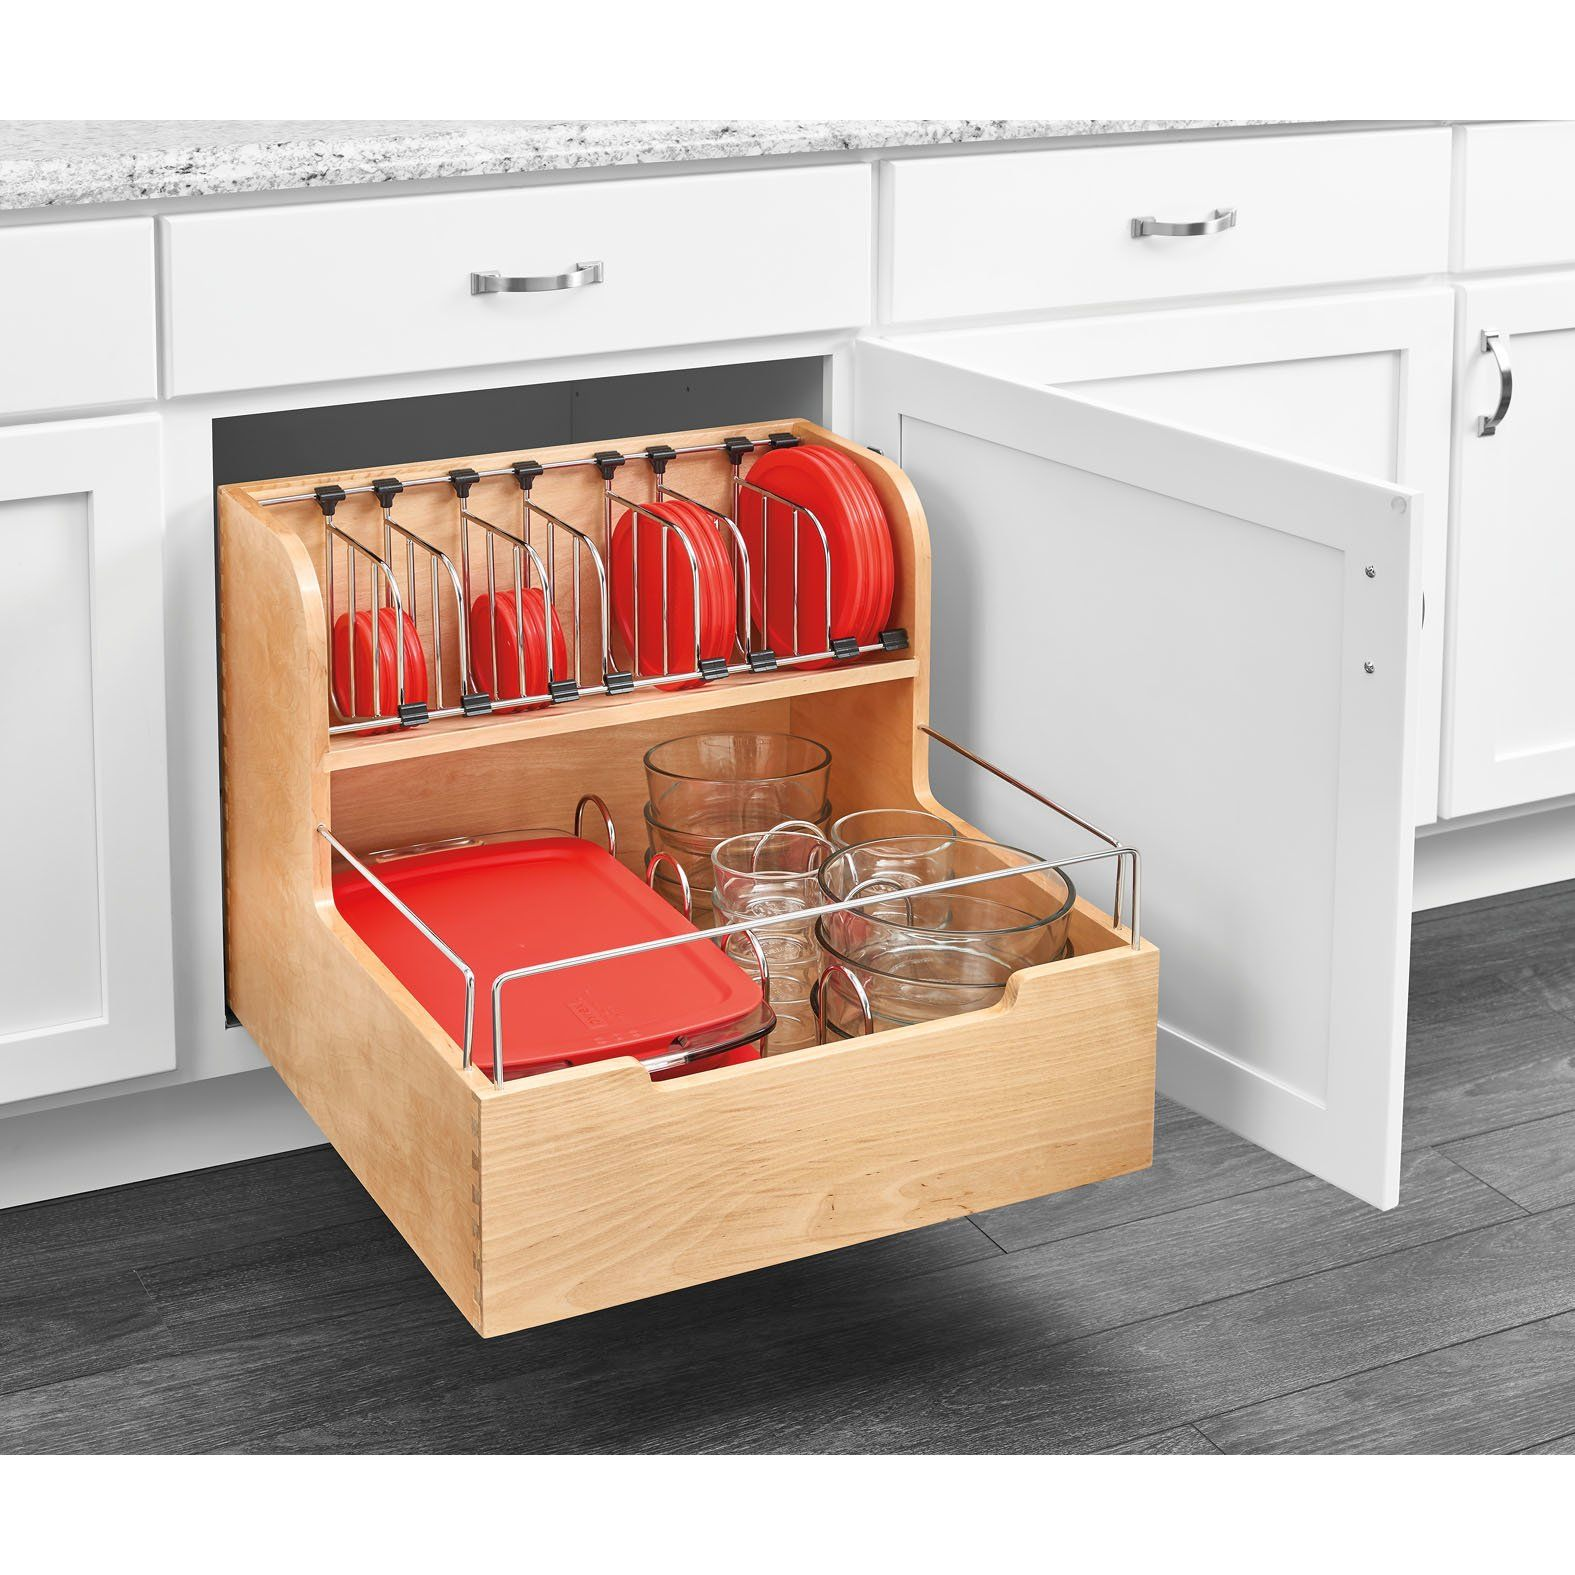 food storage pull out pantry kitchen design kitchen remodel kitchen storage on kitchen organization recycling id=95759